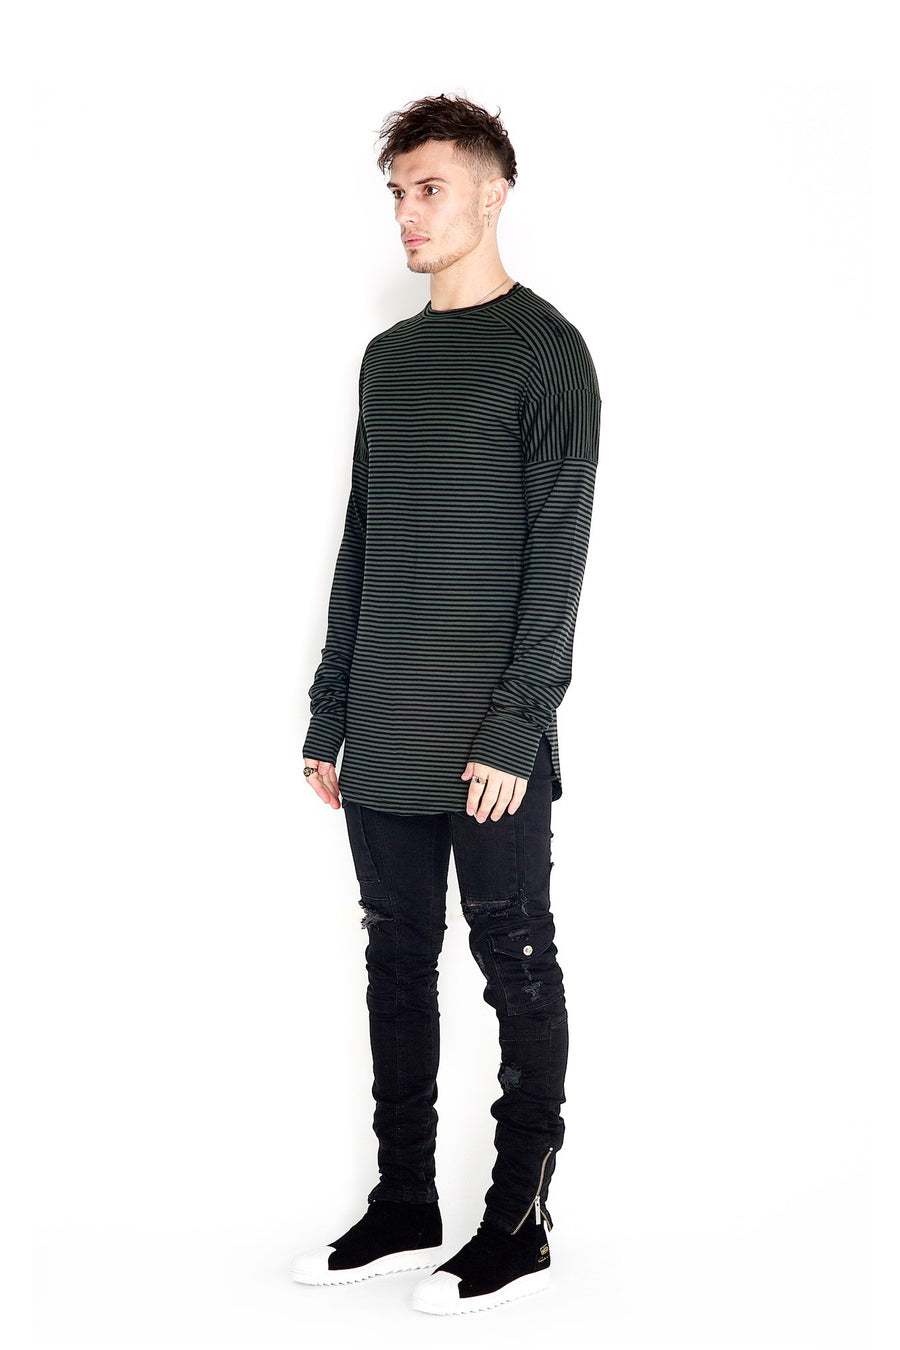 Toka Long Sleeve under T-shirt